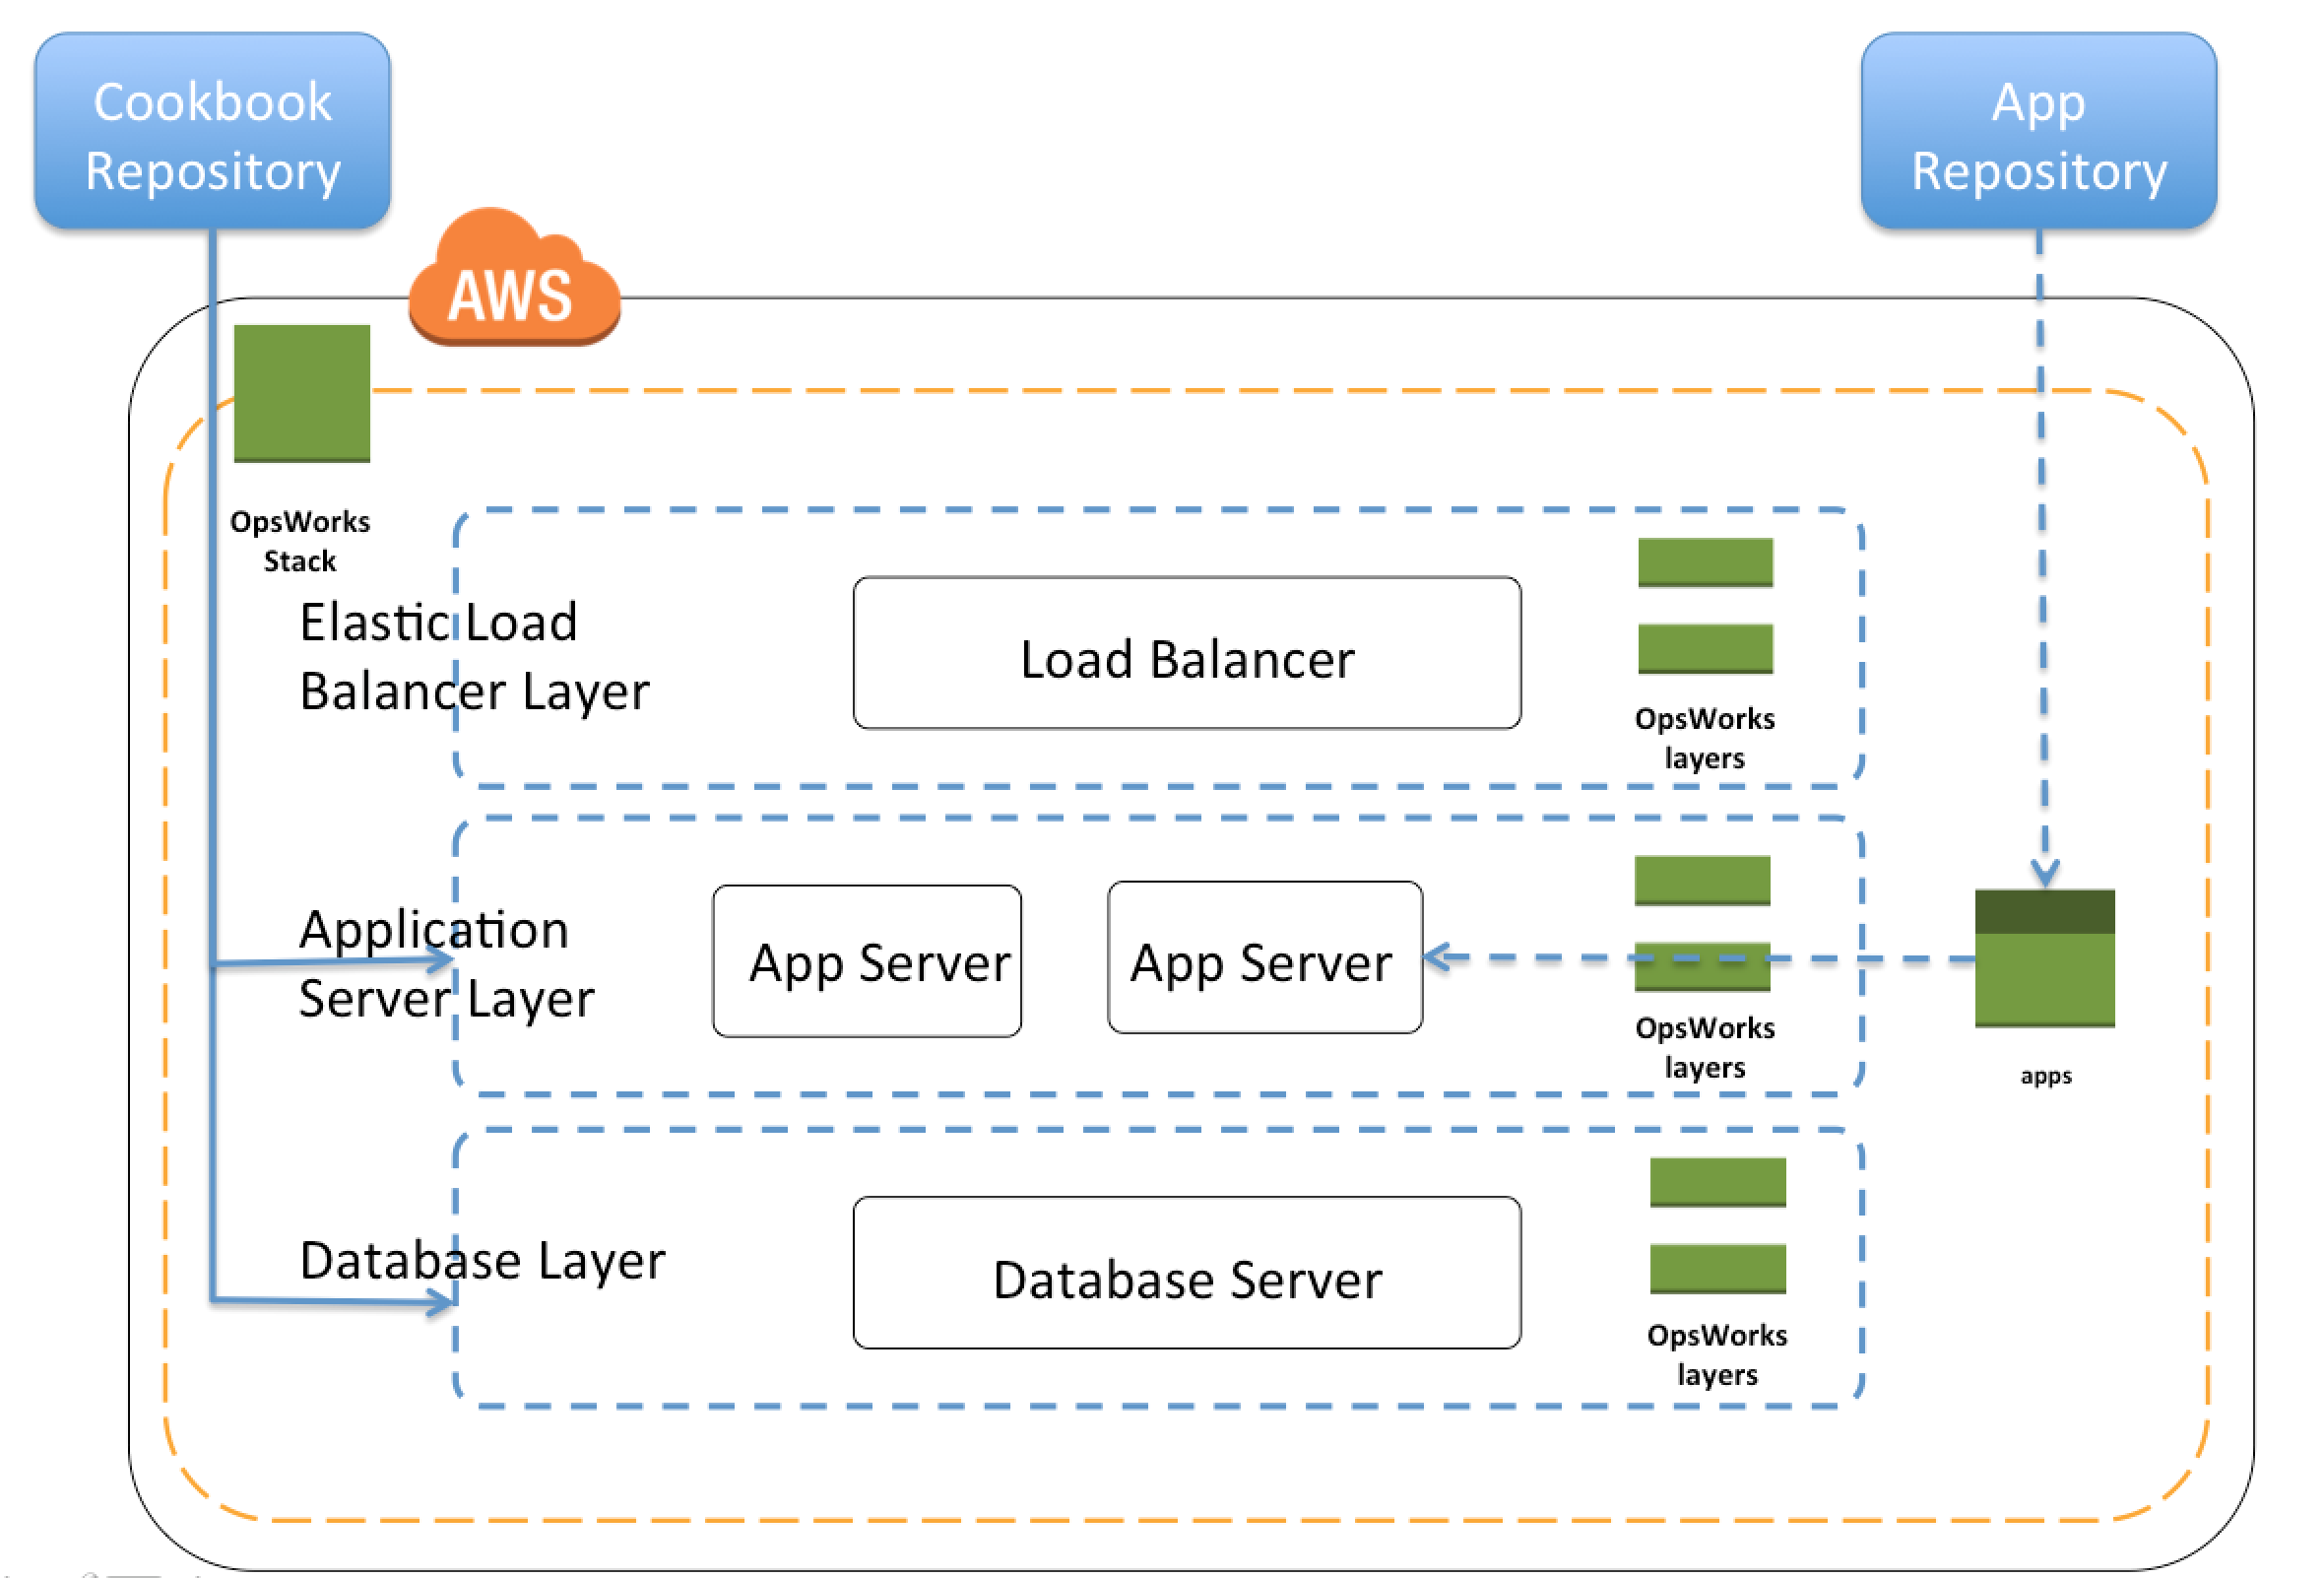 AWS OpsWorks Stacks